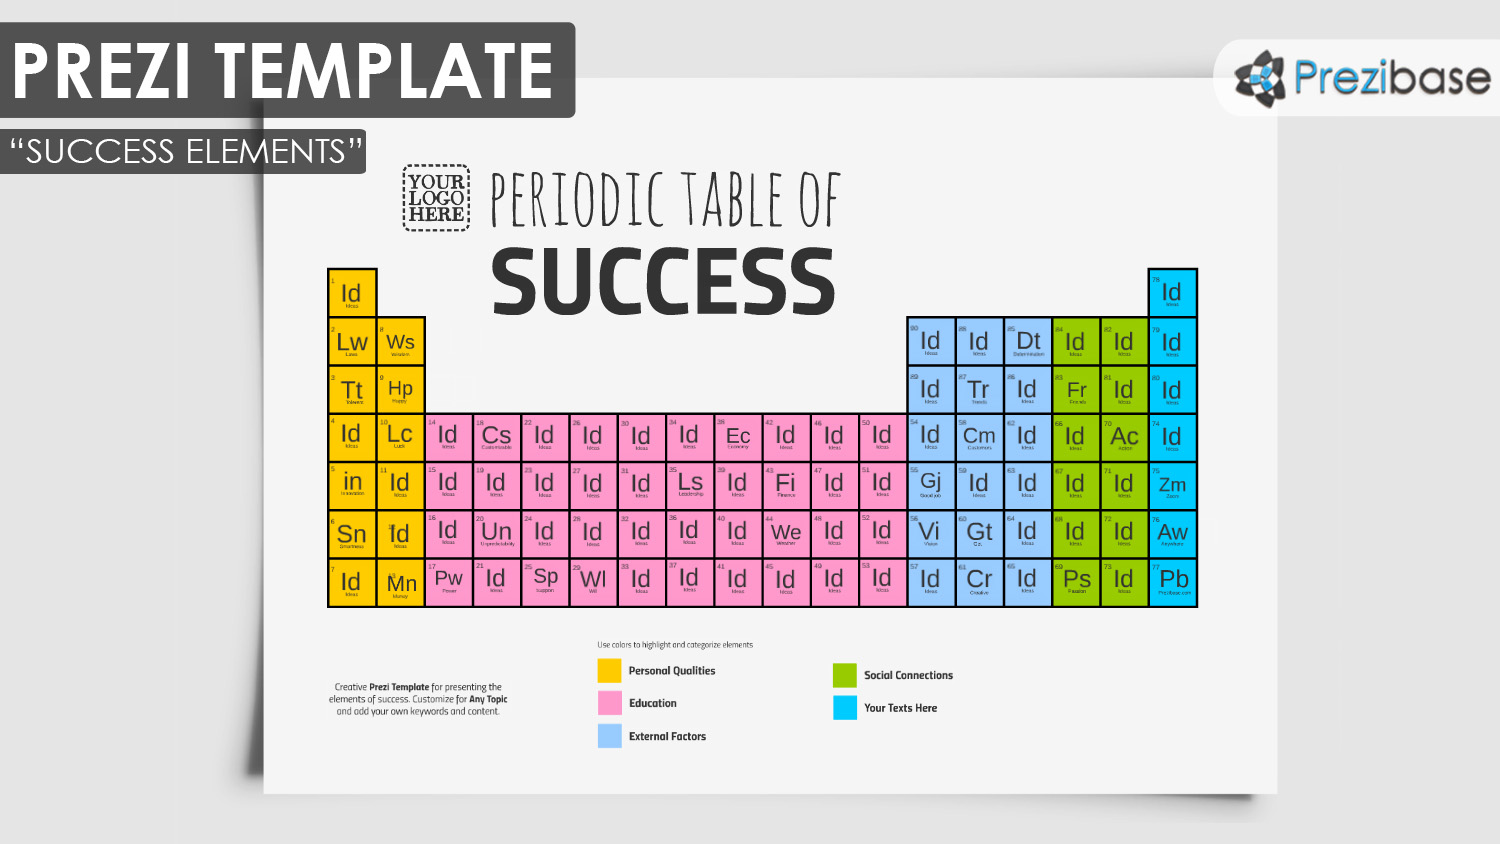 resume Prezi Resume Template free prezi templates prezibase success elements periodic table of ideas template creative